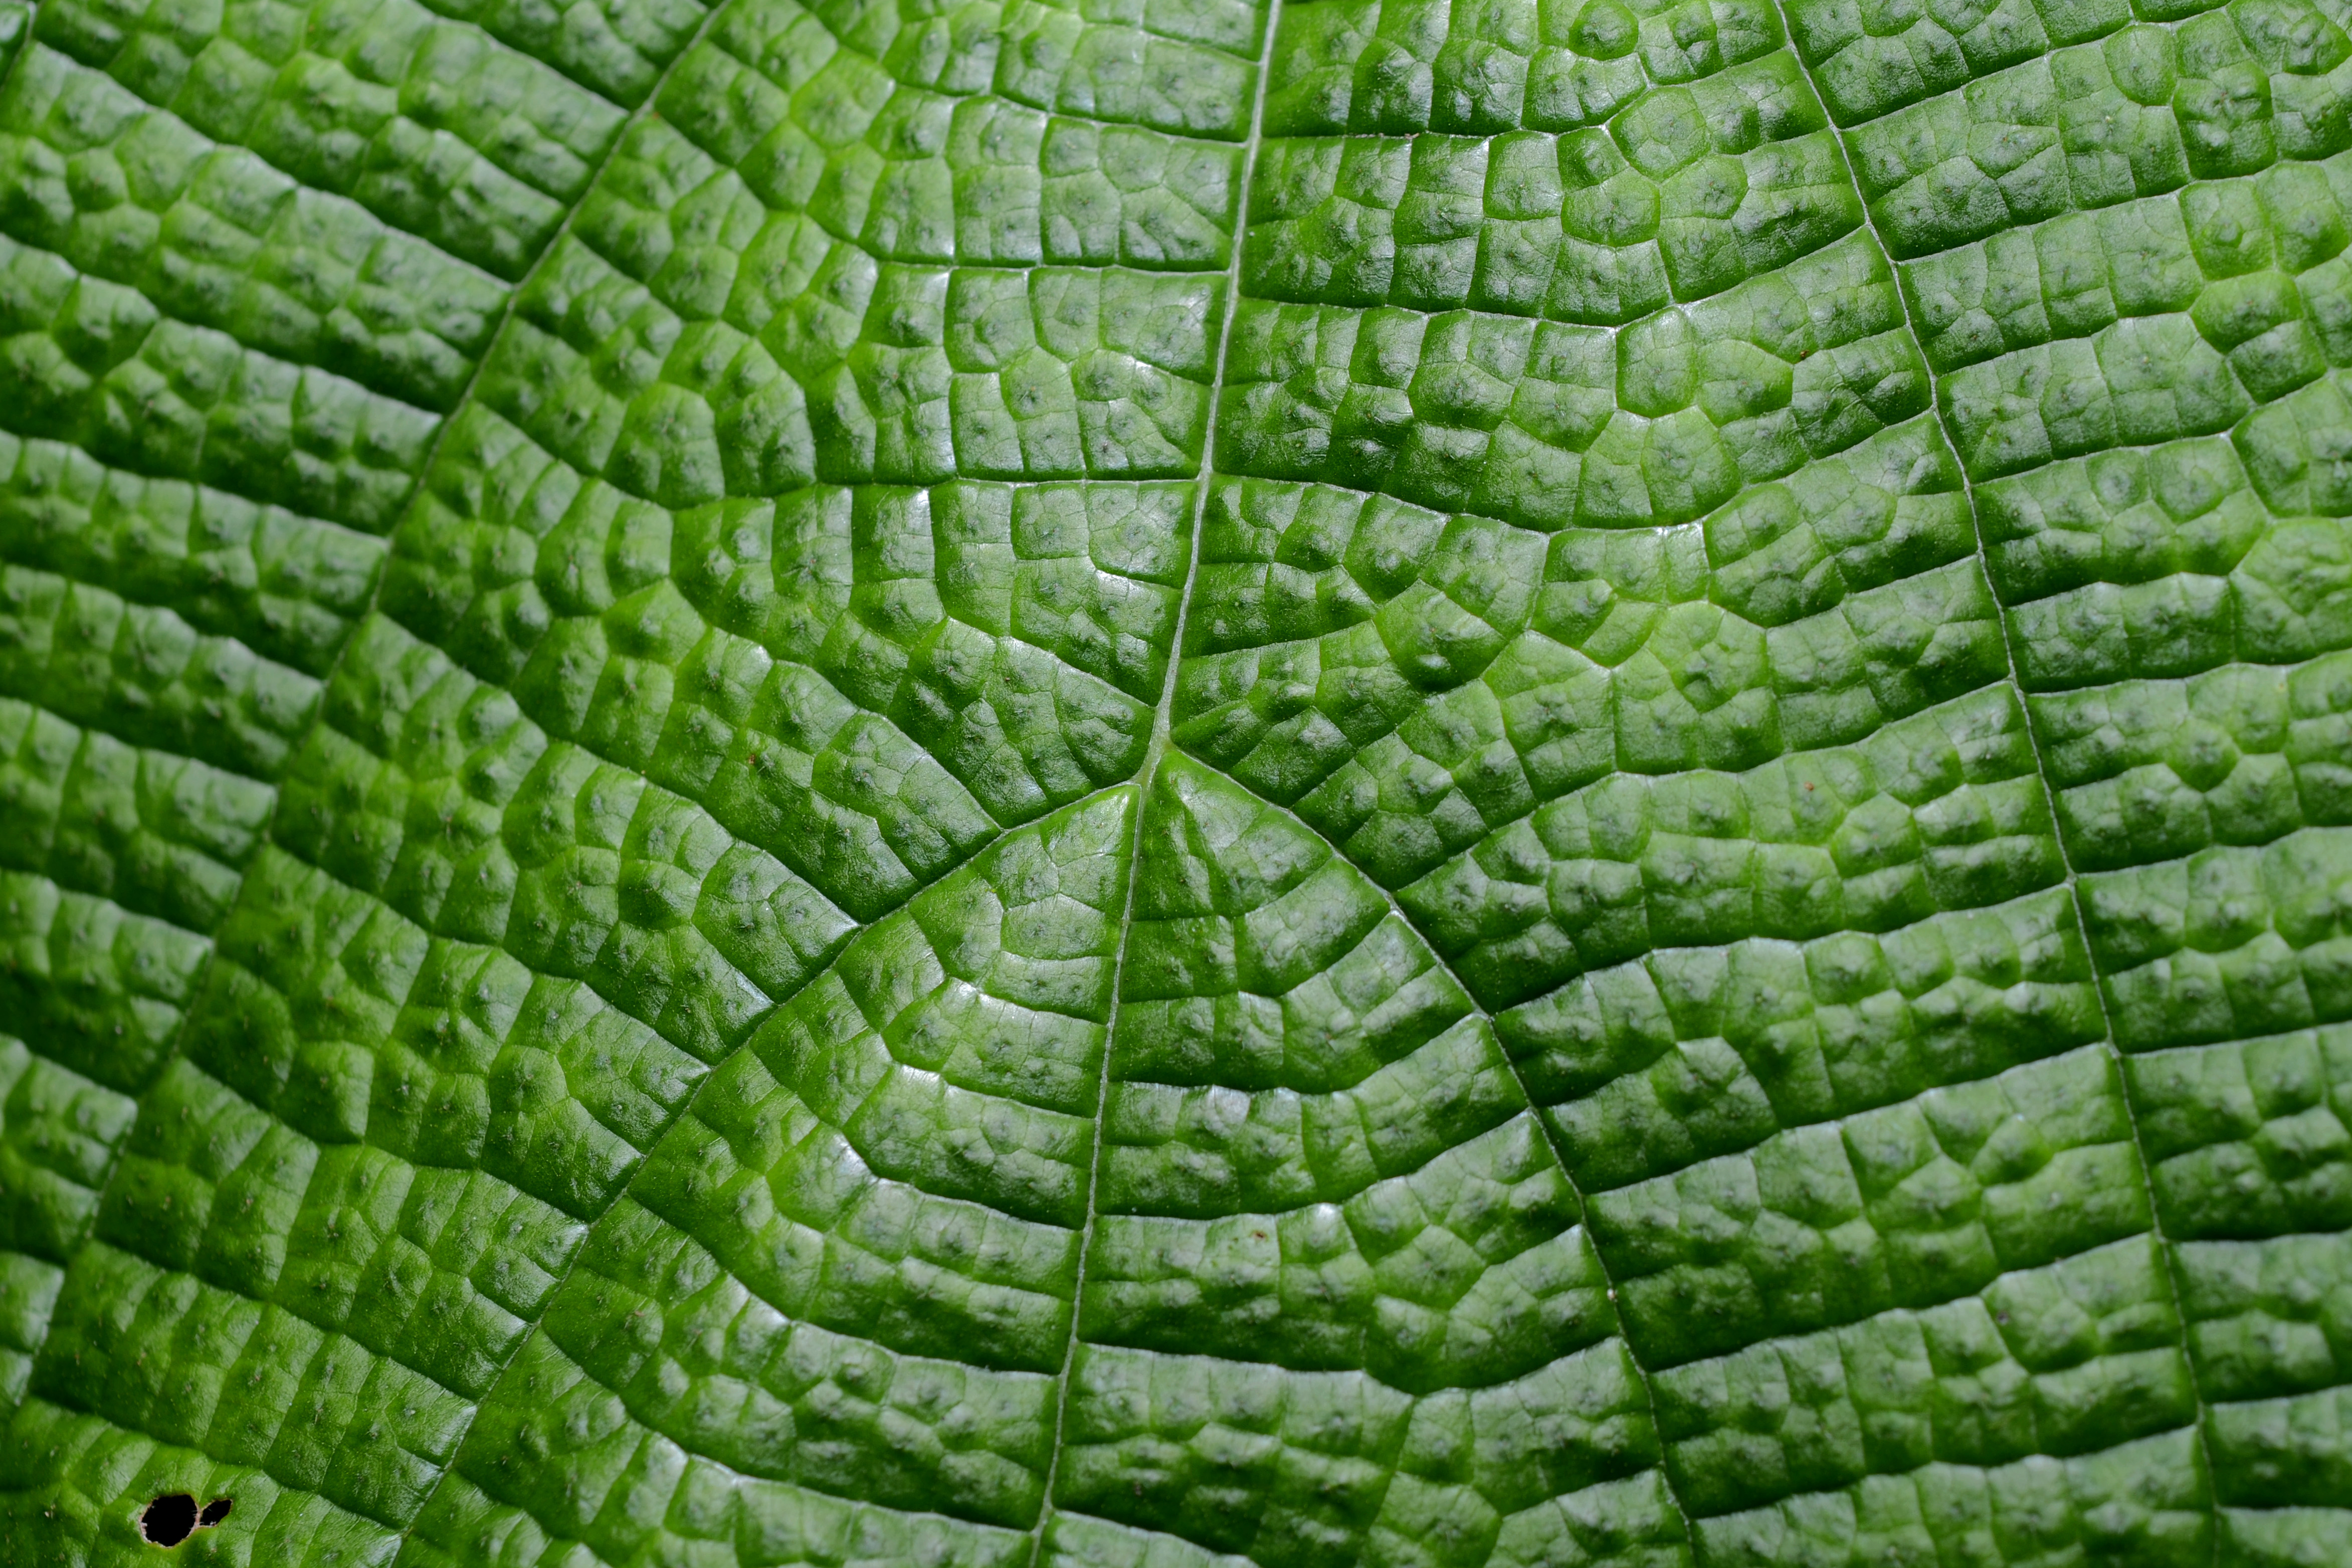 File:Flickr - ggallice - Leaf texture (5).jpg - Wikimedia Commons